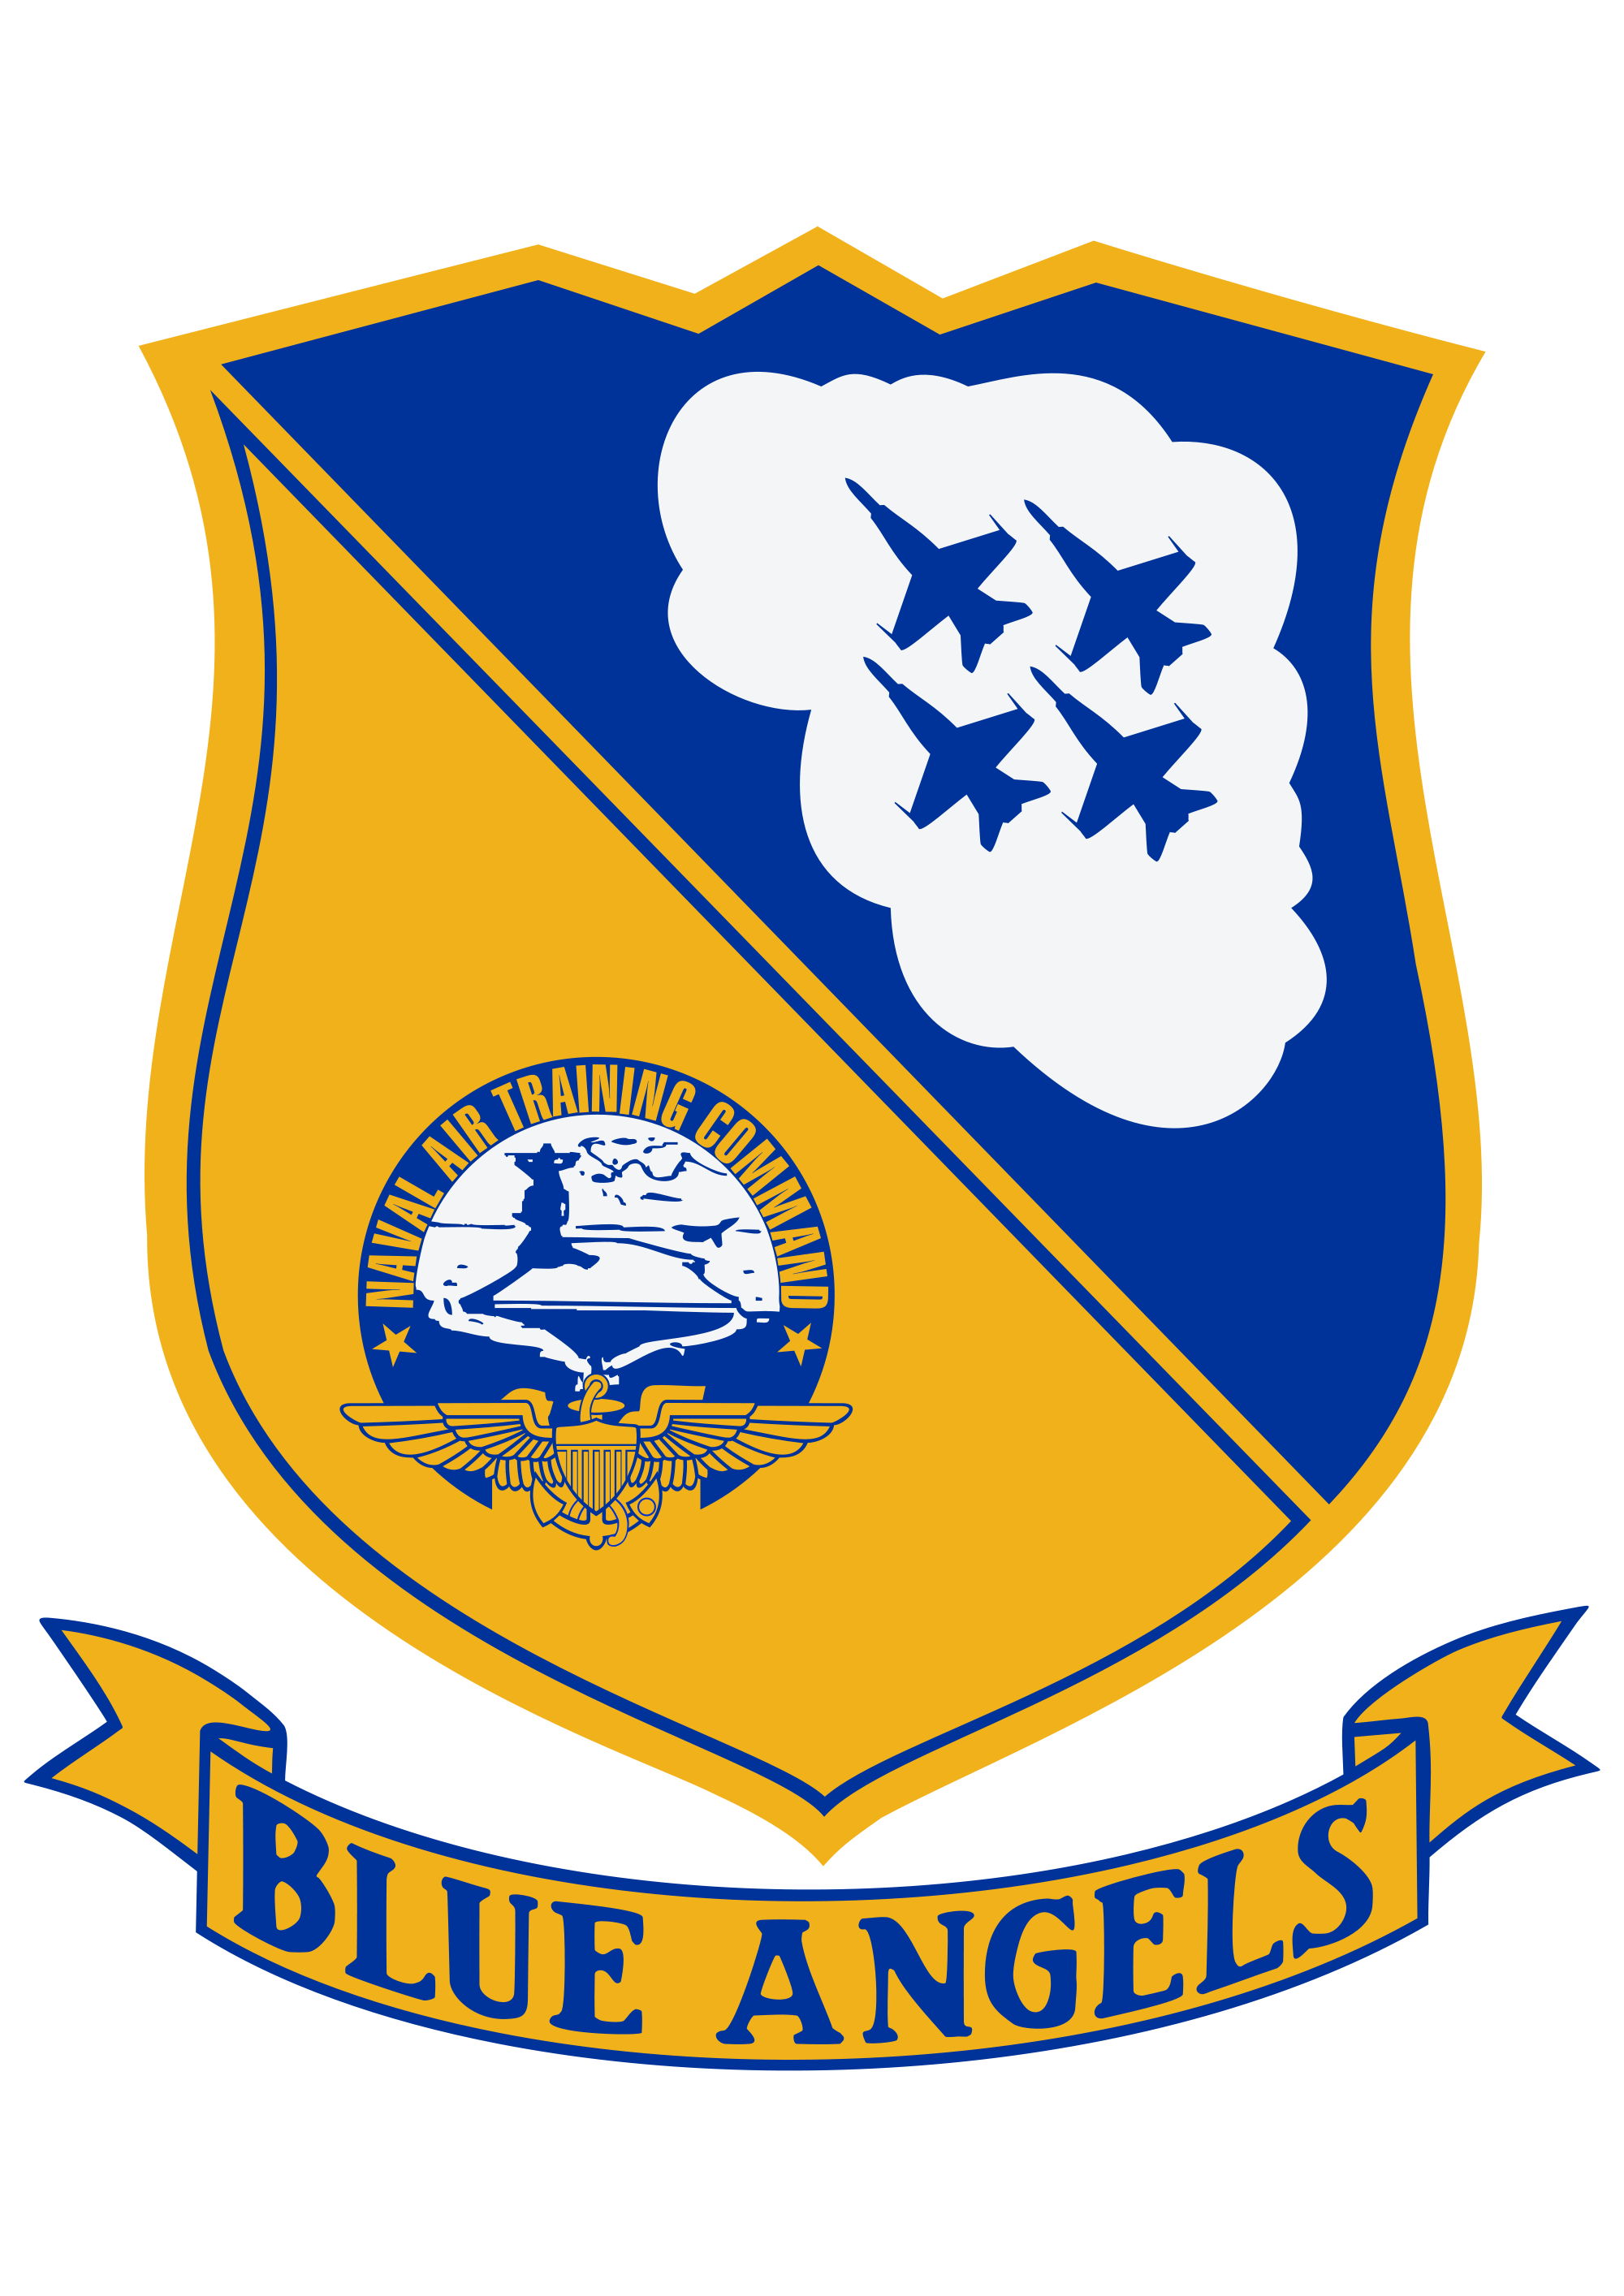 jpg freeuse download File blue angels svg. Vector emblem insignia